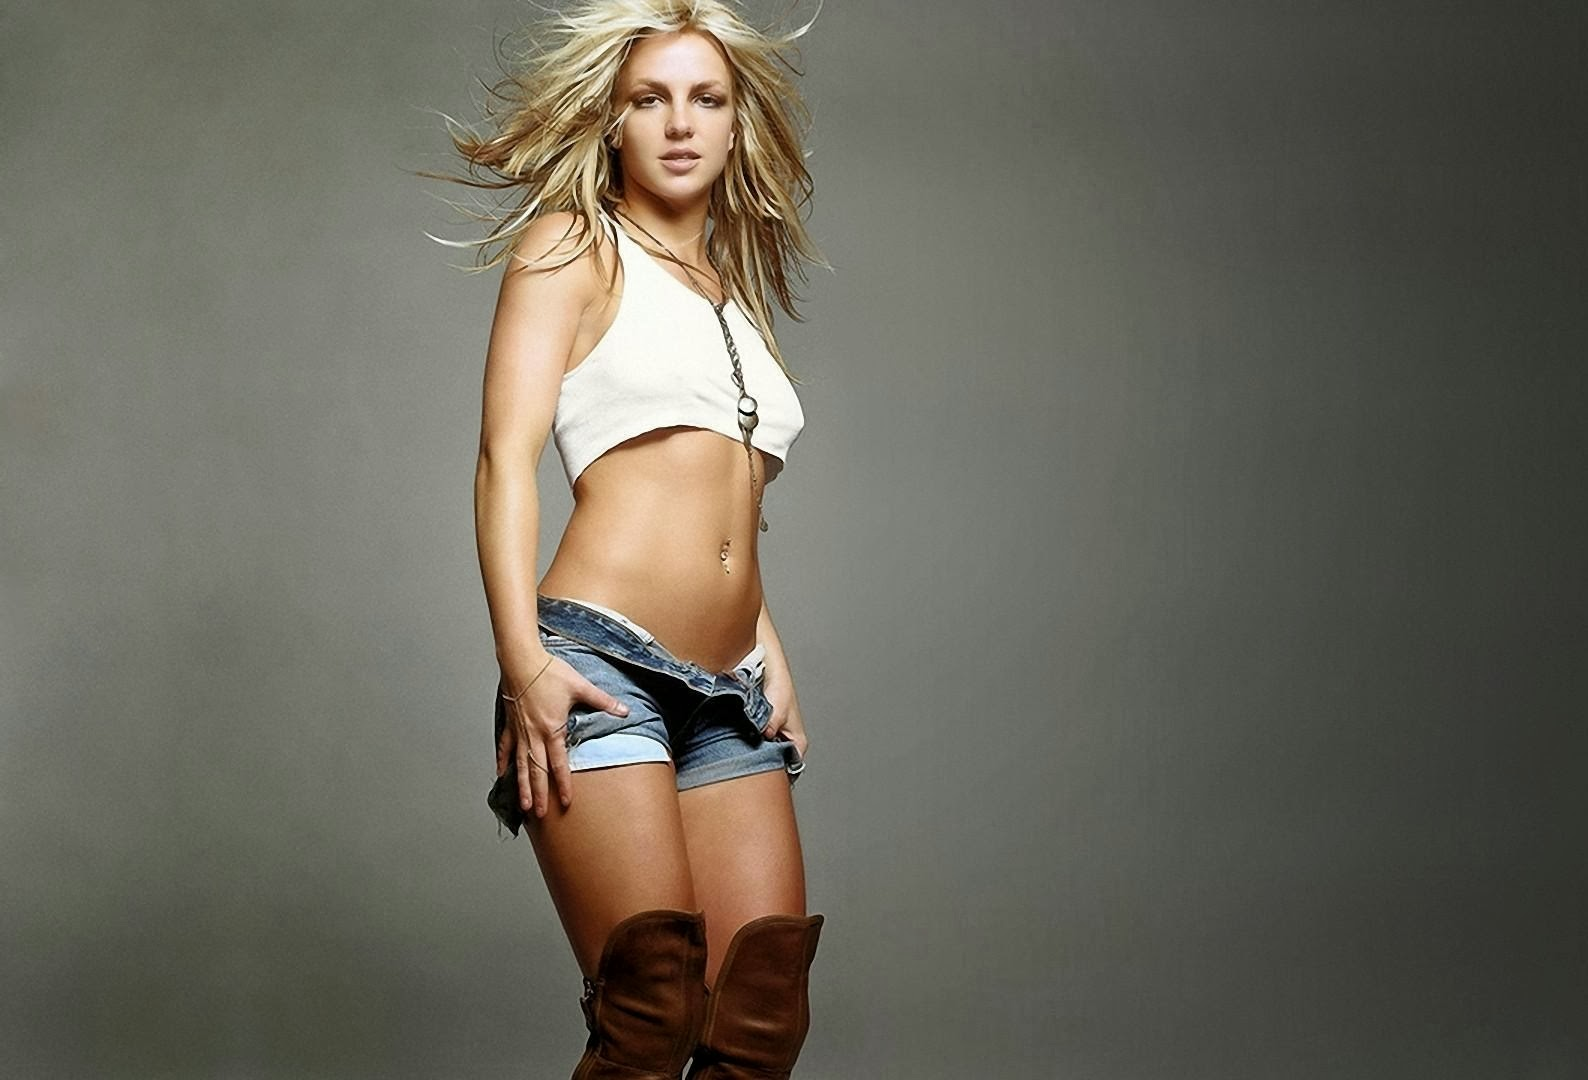 Britney+Spears+Hd+Wallpapers+Free+Download027